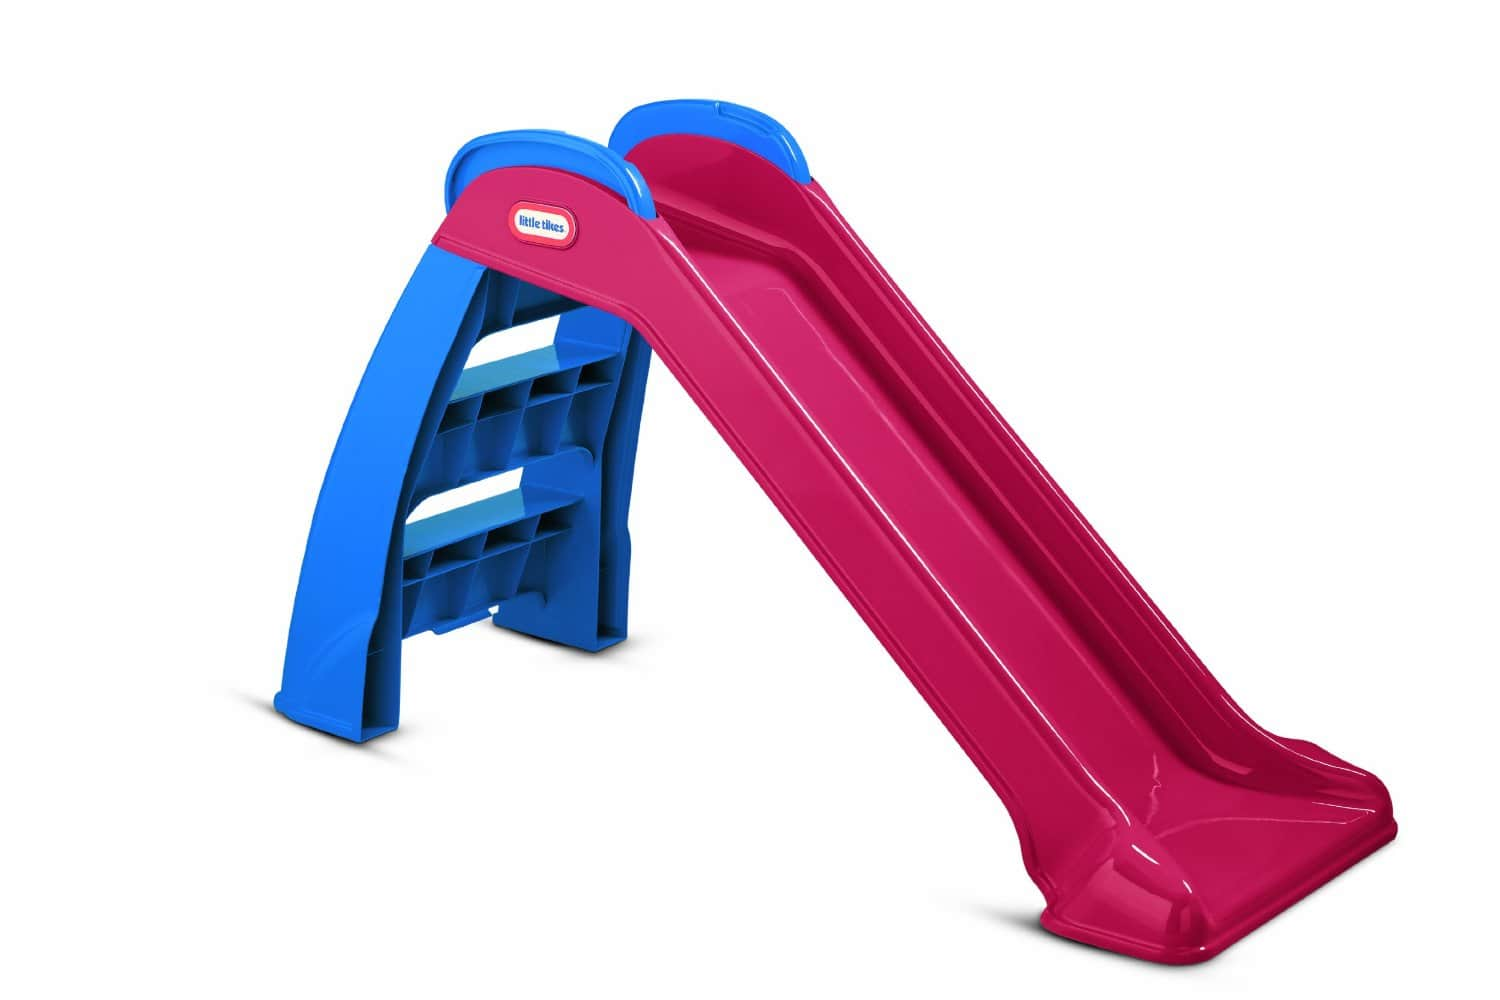 Little Tikes First Slide (Red/Blue)  $20 + Free Shipping